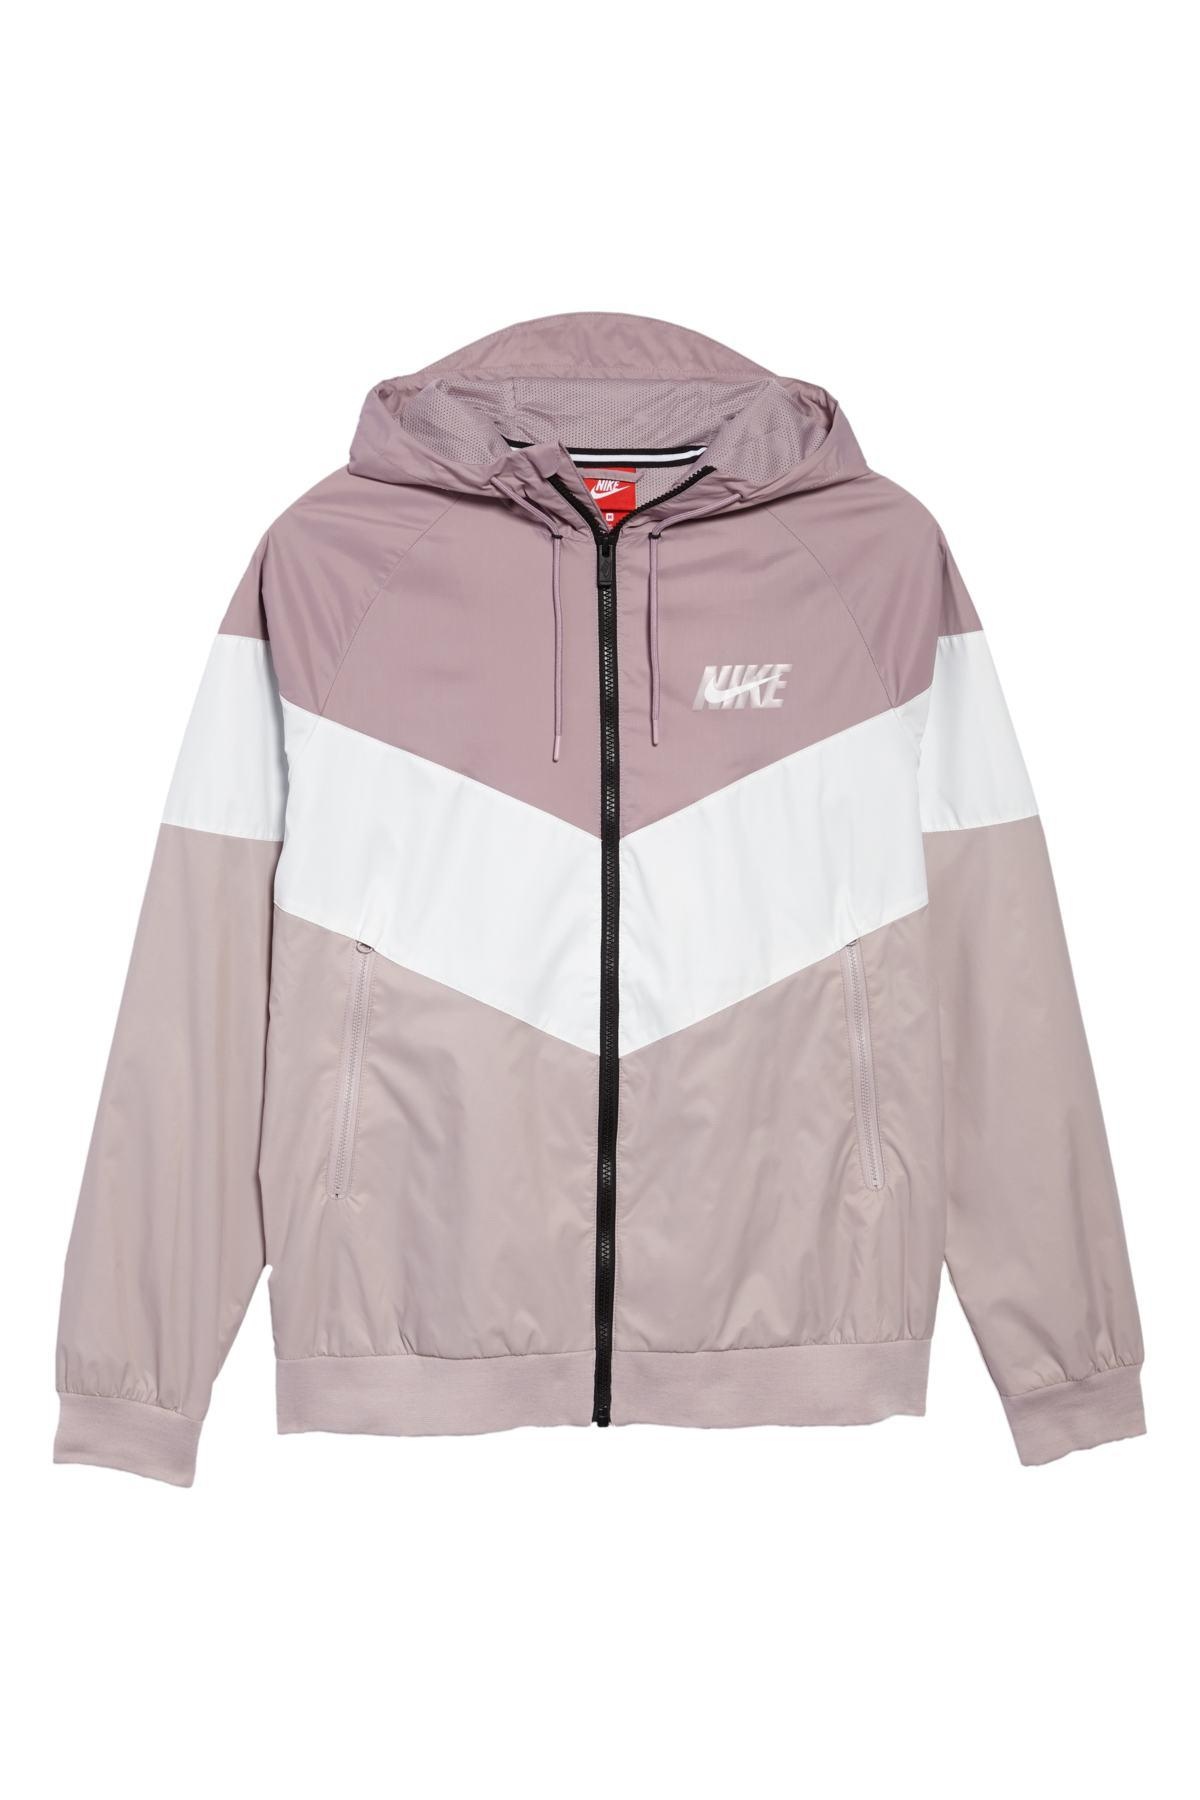 d6df40801405 Lyst - Nike Windrunner Wind   Water Repellent Hooded Jacket for Men